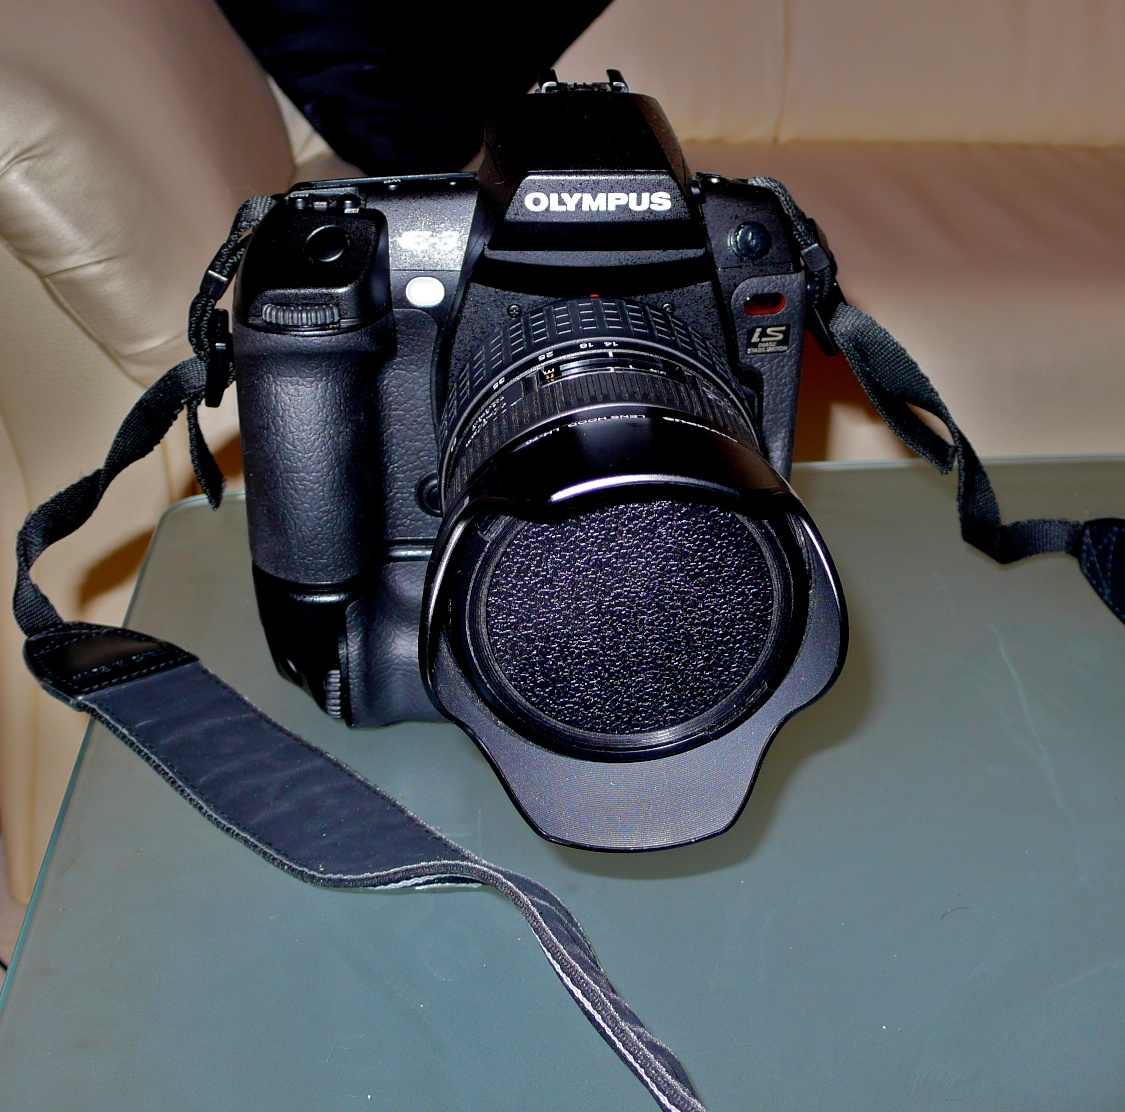 FOR SALE: OLYMPUS E3  PROFESSIONAL DSLR WITH ZUIKO 14-54MM 2.8-4 LENS+ BATTERY GRIP